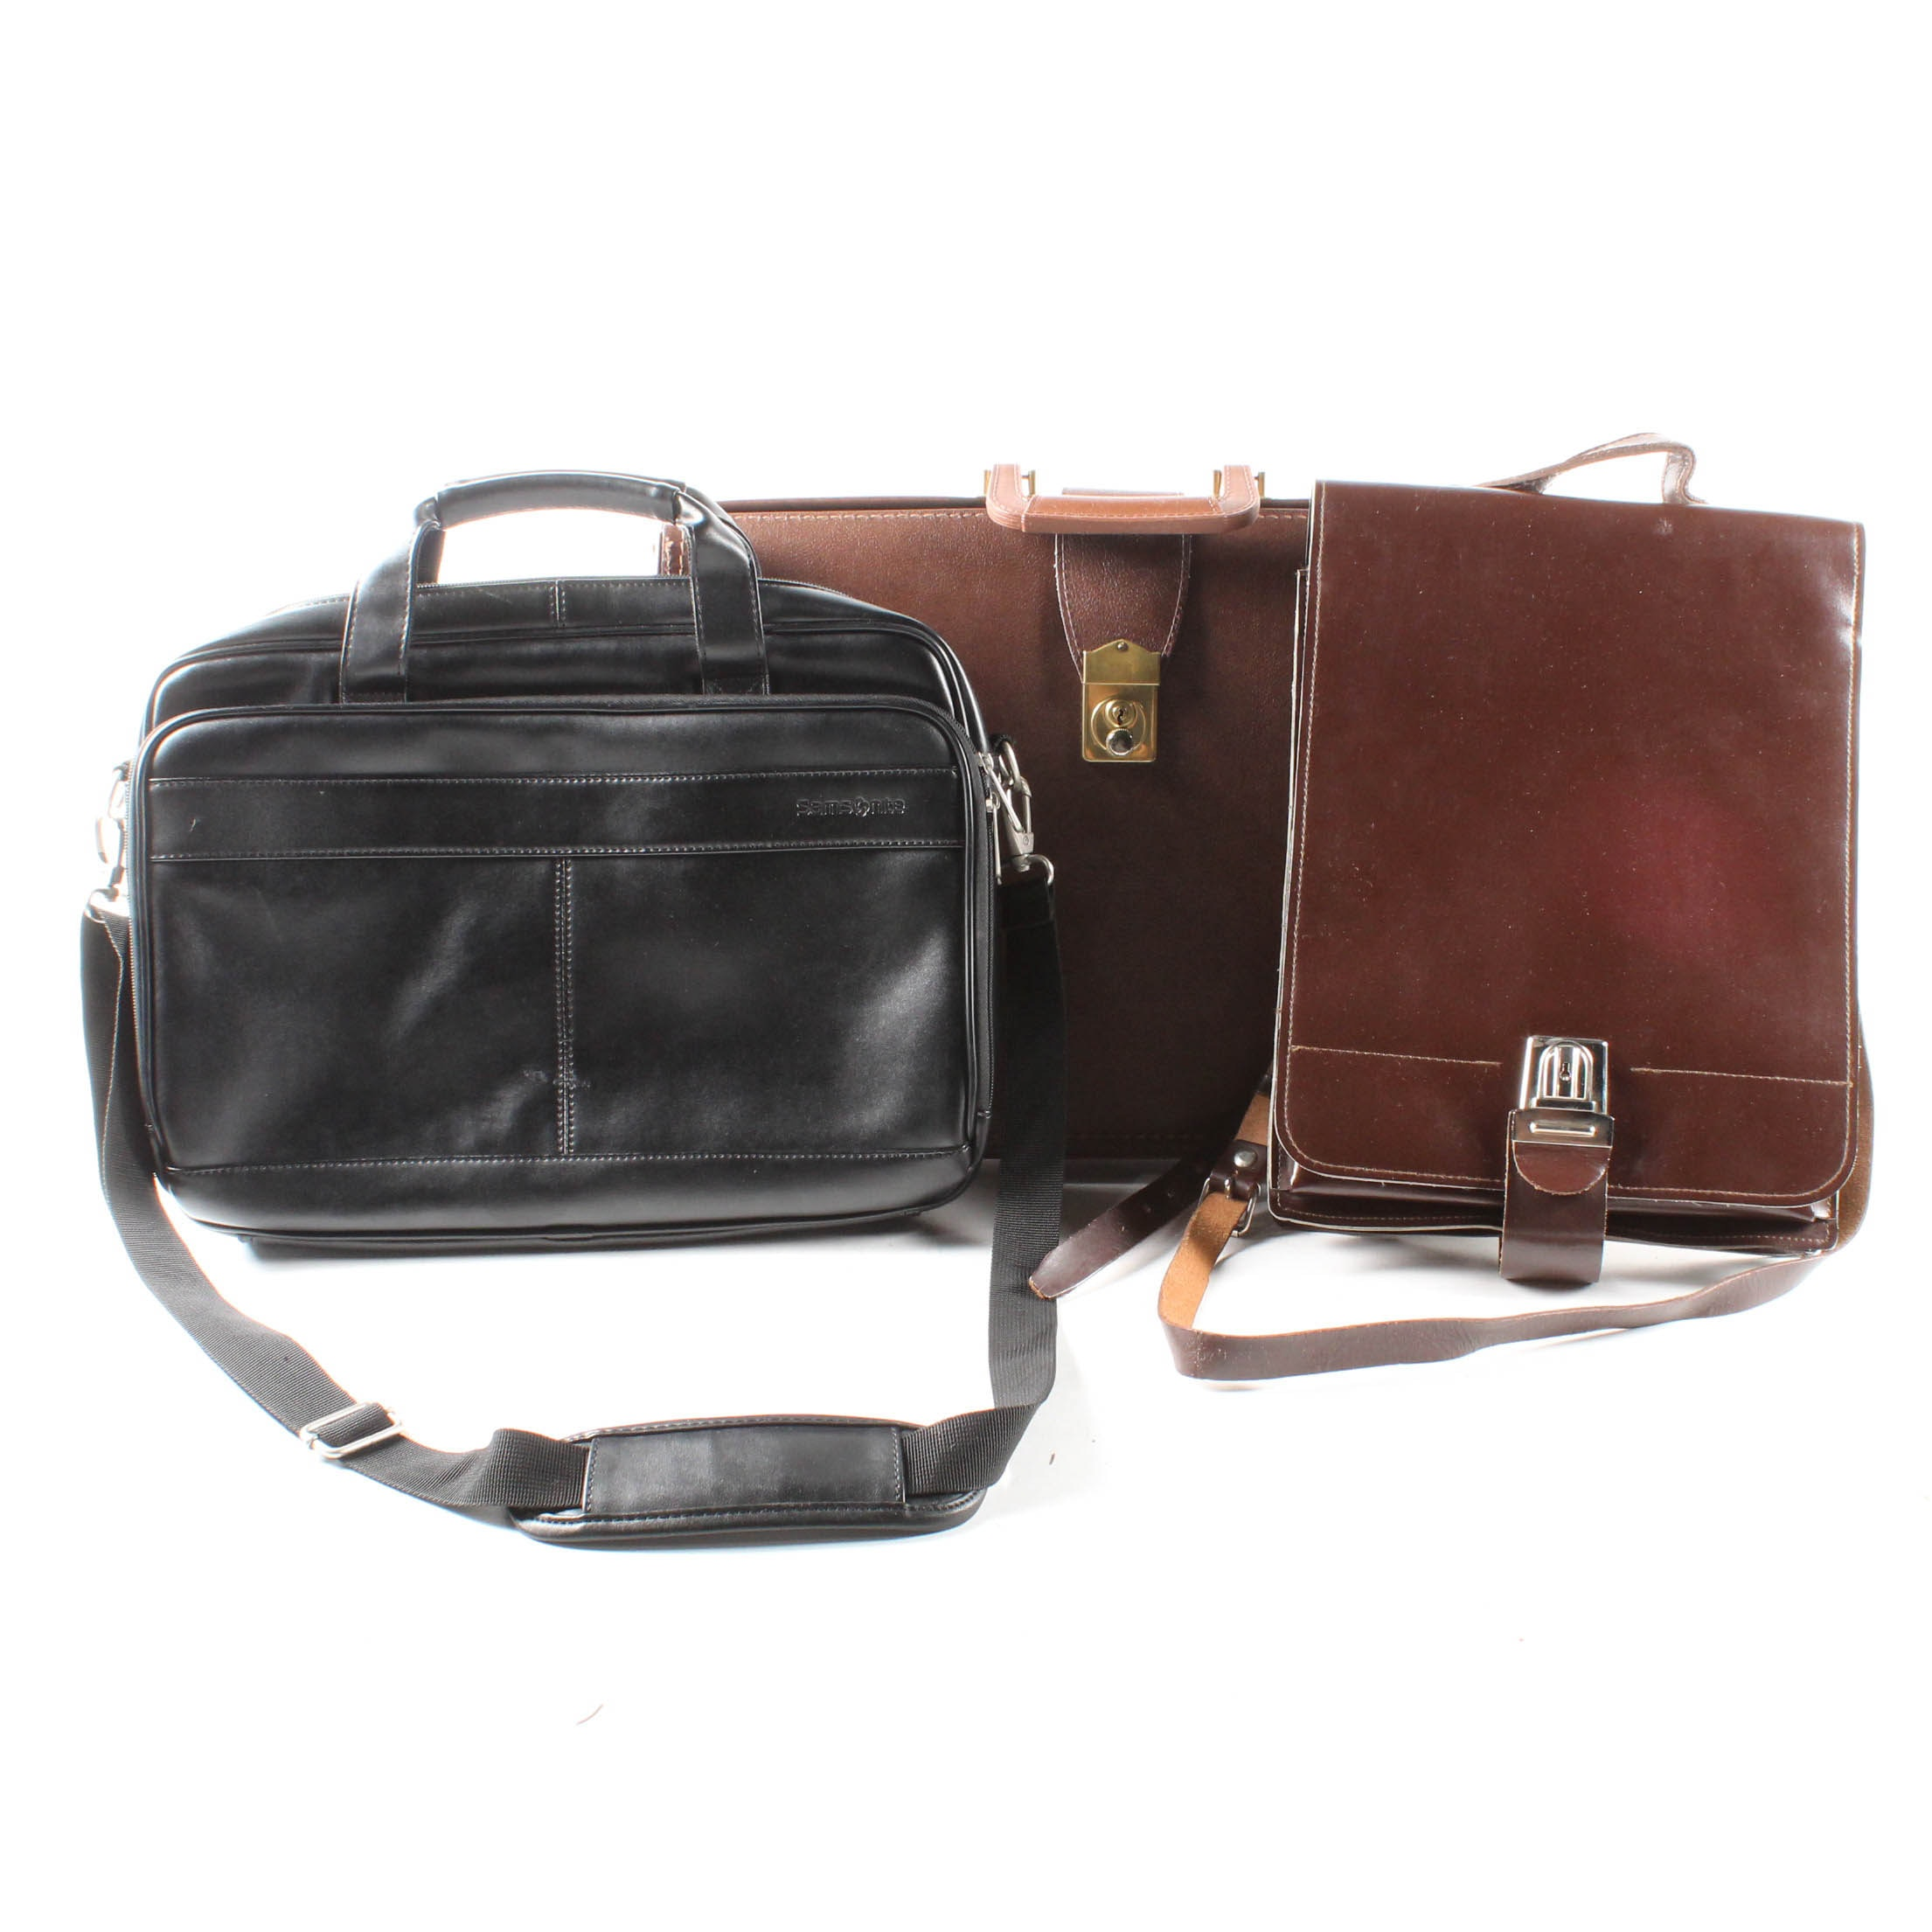 Leather Briefcase and Satchel Bags